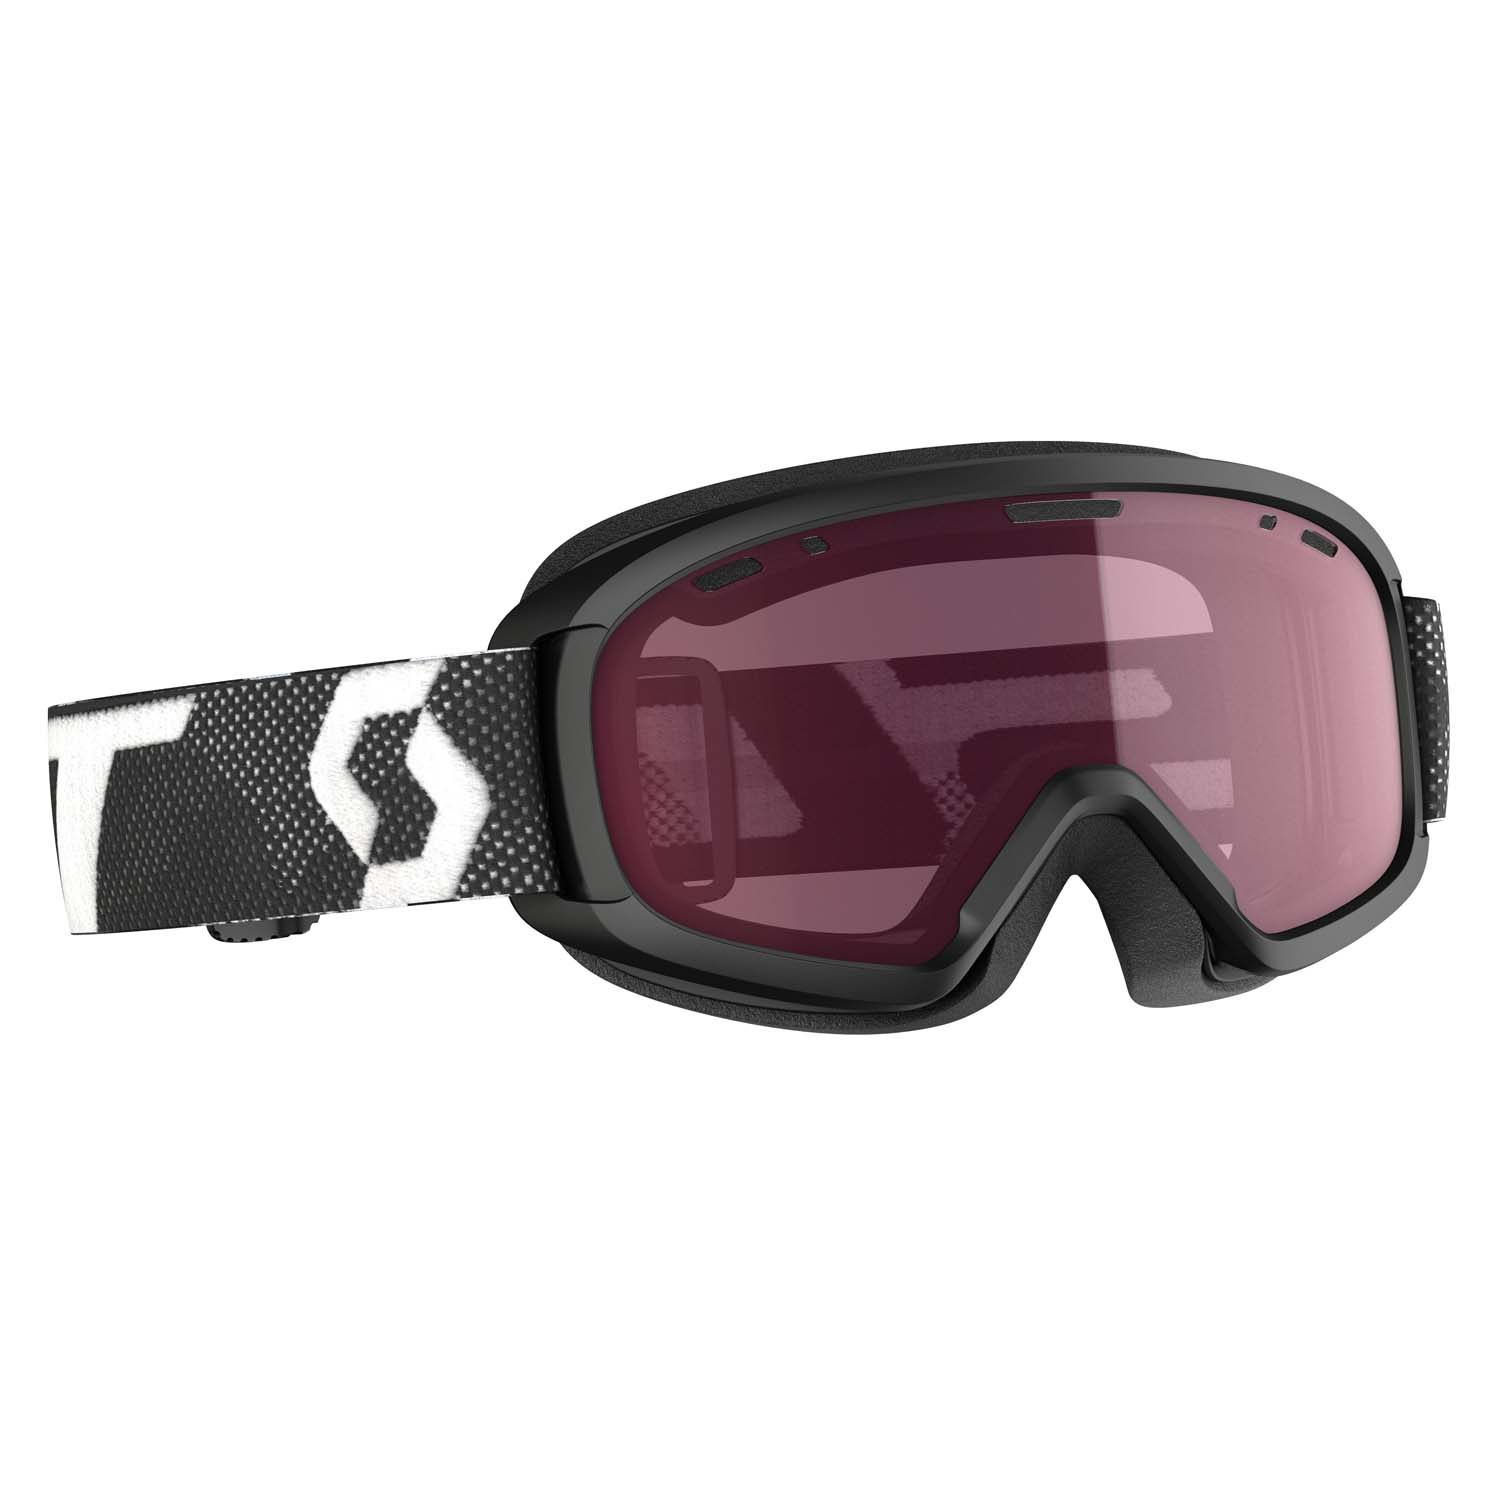 Scott Witty Junior Goggle Black/White/Enhancer Lens 2020